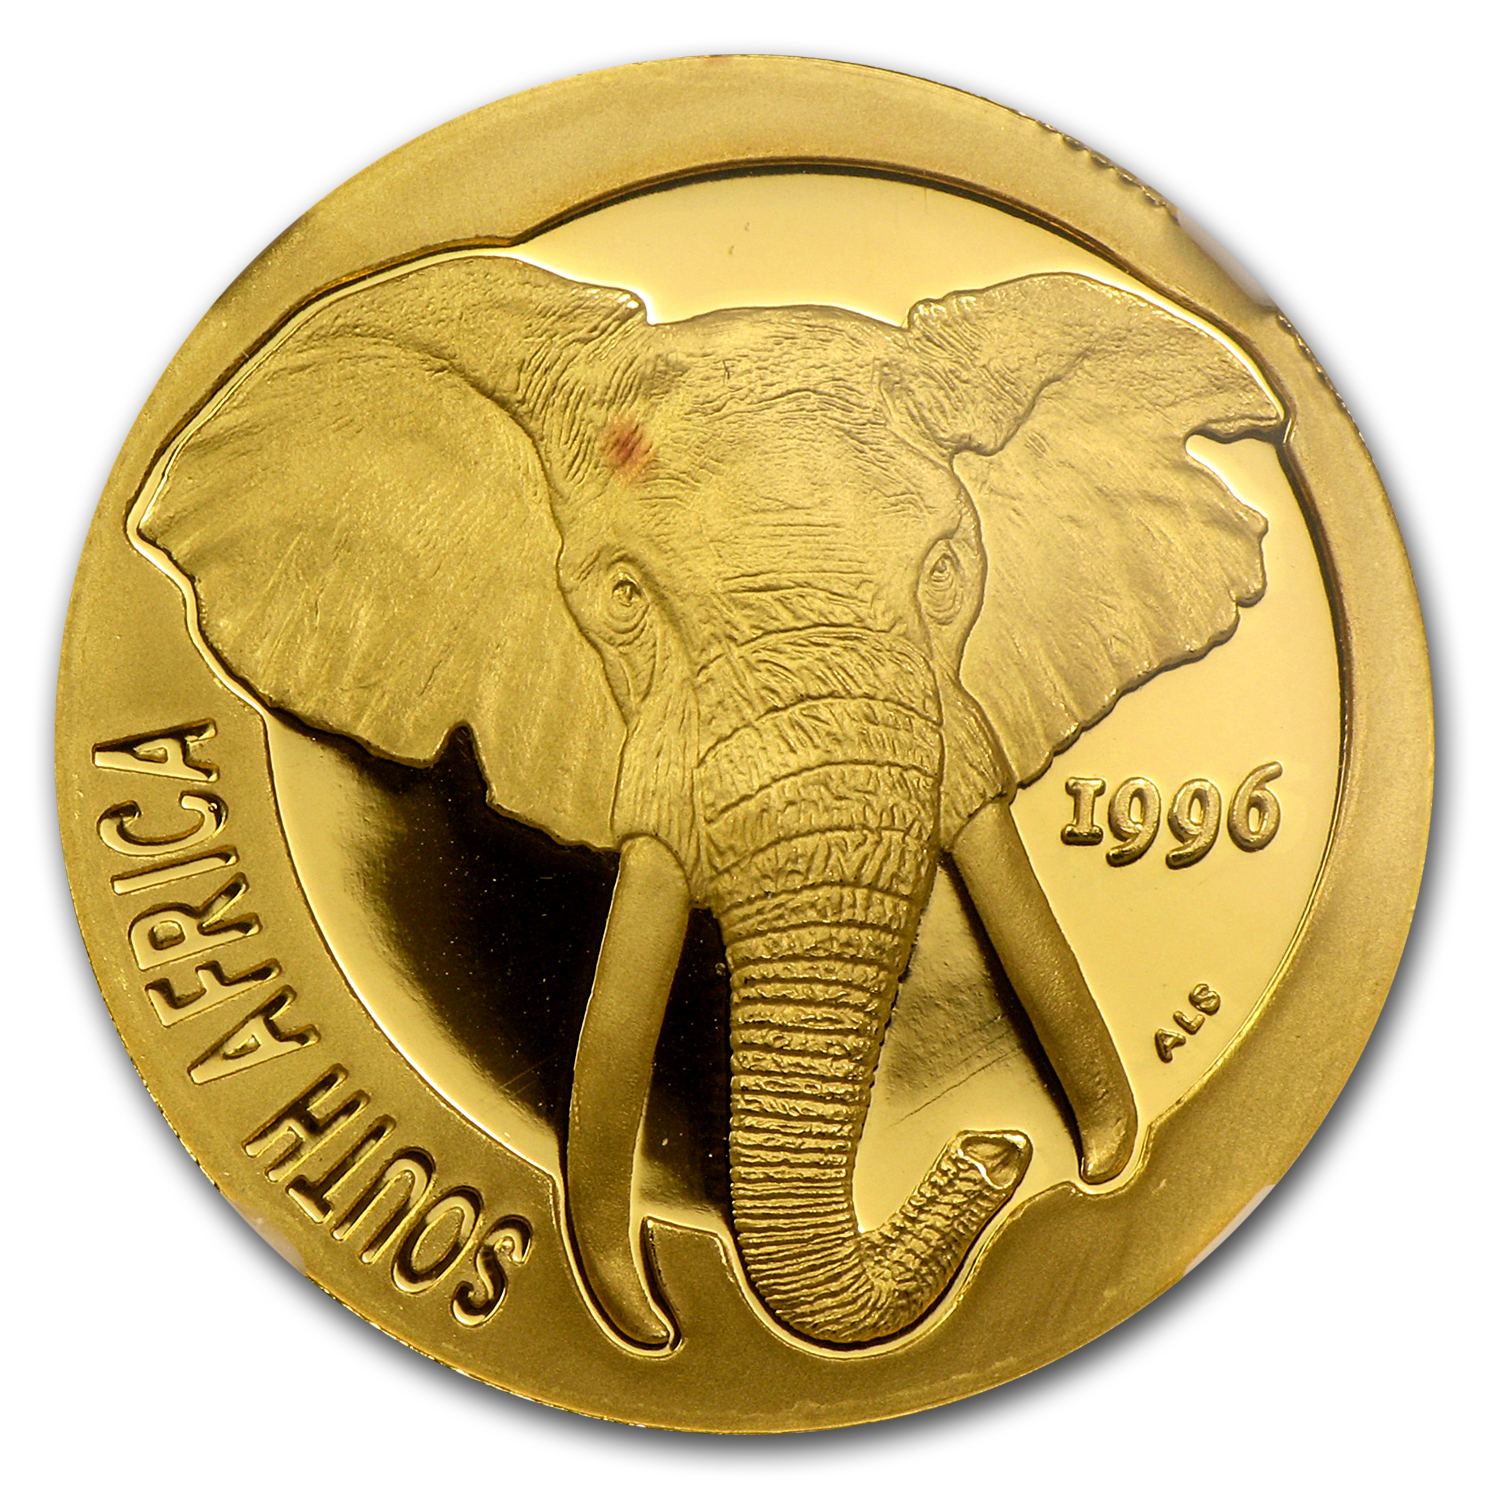 1996 1/2 oz Gold South African Natura (Elephant) PF-69 NGC